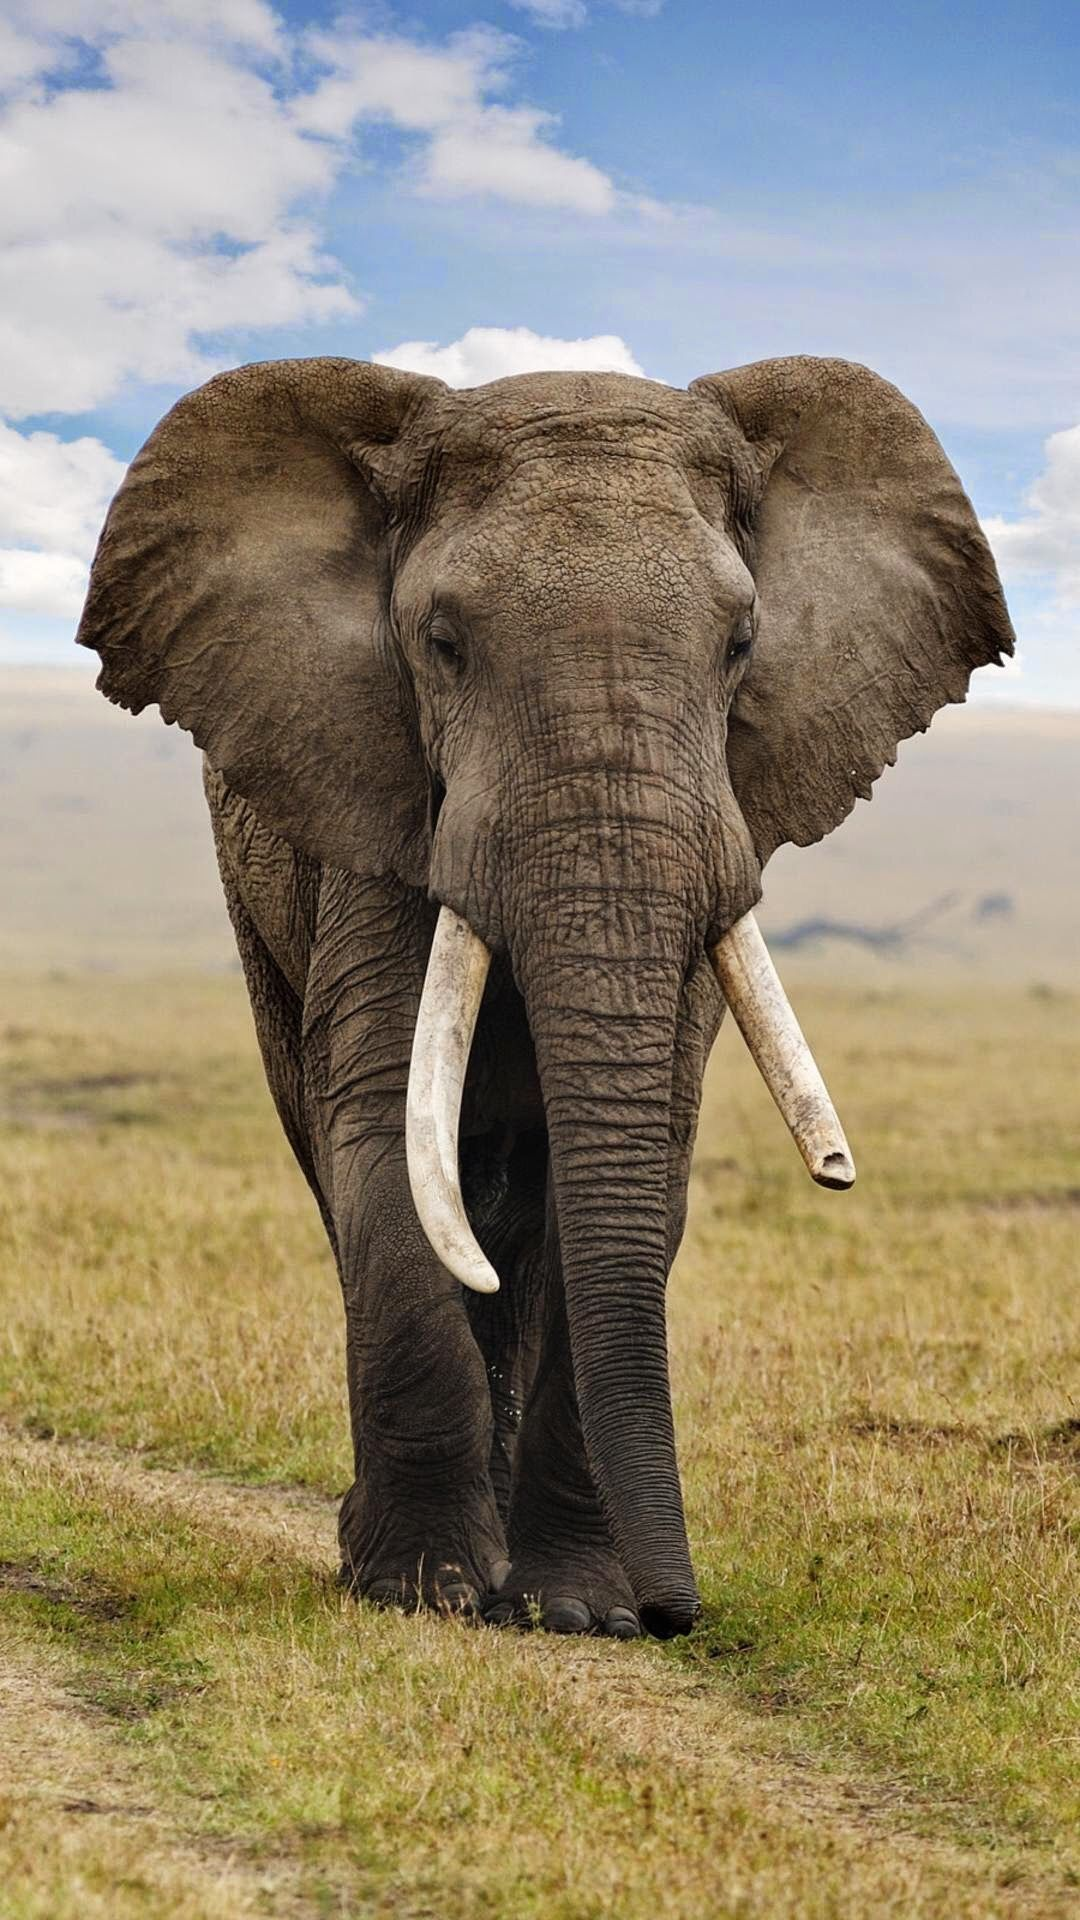 Baby Elephant Animals Wallpapers Ideas In 2020 Elefanten Fotos Elefanten Tapete Elefanten